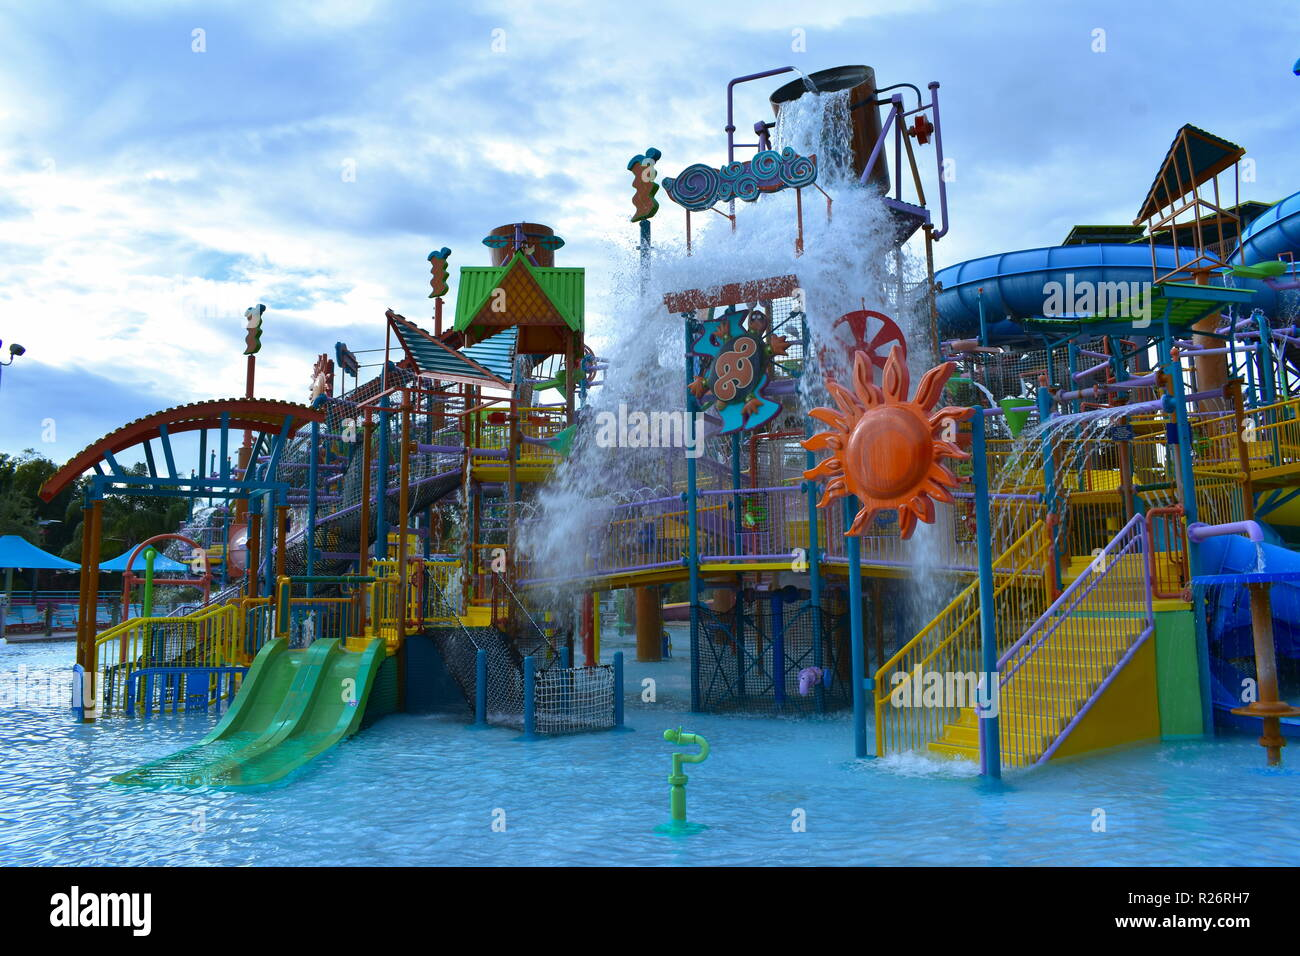 Orlando, Florida. October 25, 2018. Colorful  Attraction with splashing water in lightblue pool on cloudy sky background at Aquatica Water Park - Stock Image